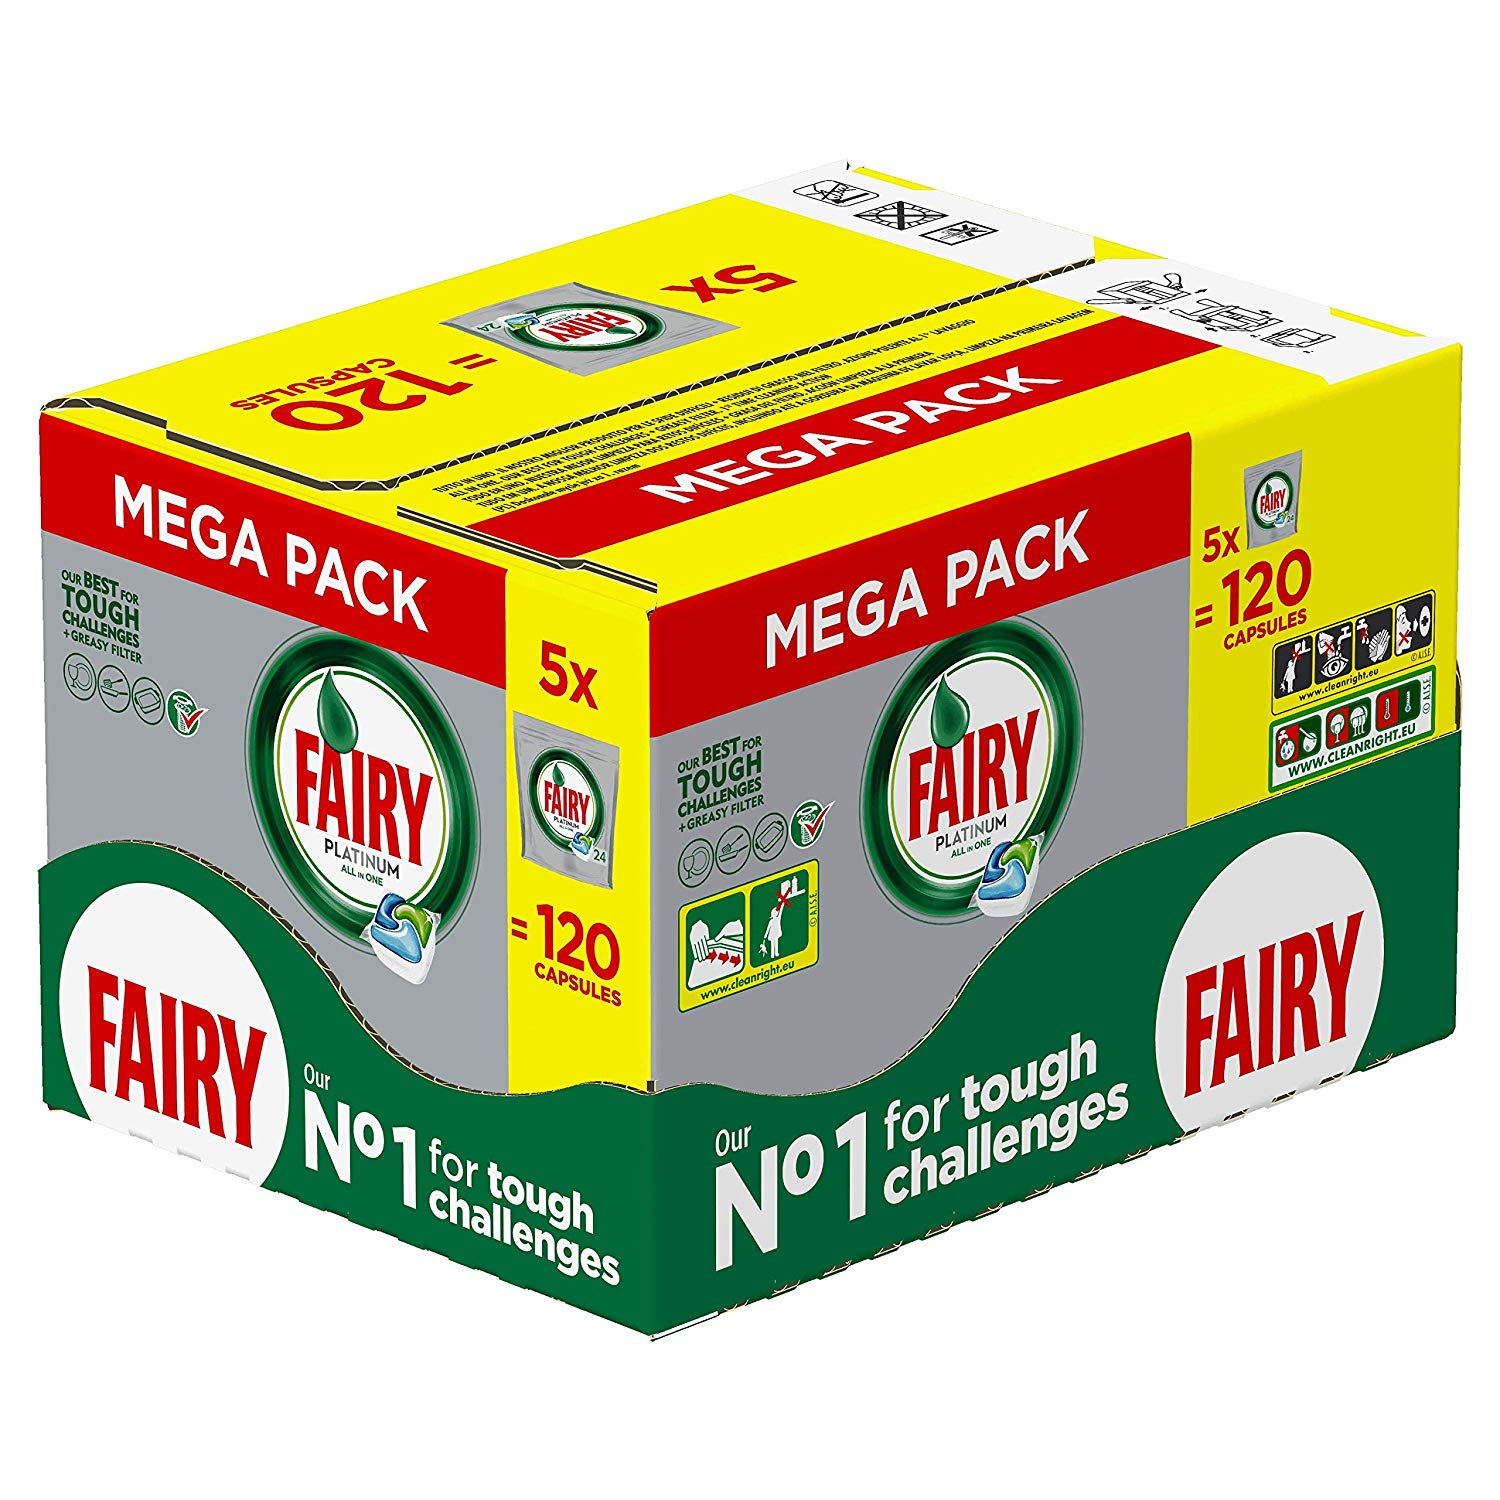 Fairy Platinum Dishwasher Tablets, 5 x 24 Tablets